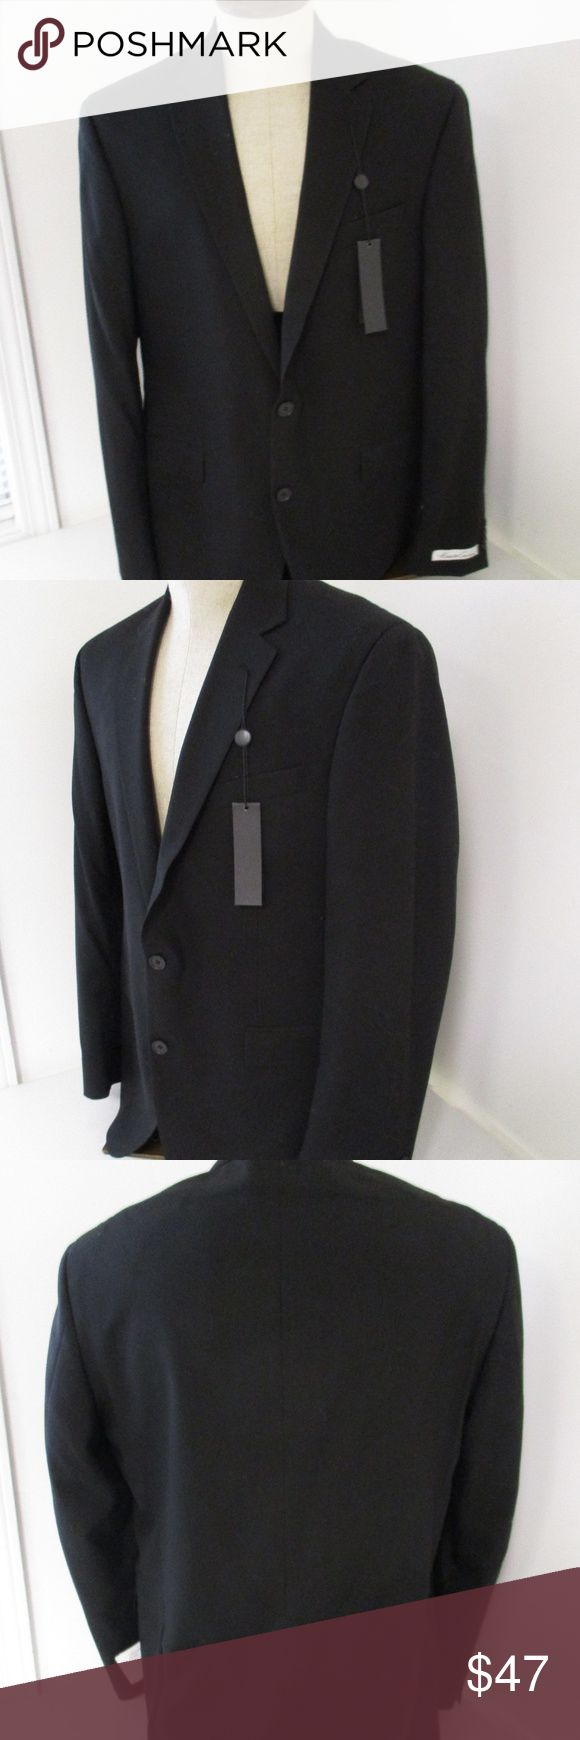 Kenneth Cole NWT Men's Black Slim Fit Blazer 42R New Kenneth Cole Jacket Size 42R W36 100% Wool Imported Dry Clean Only 2 button, side vent New condition with tag attached. Jacket only. No pants Kenneth Cole Suits & Blazers Sport Coats & Blazers